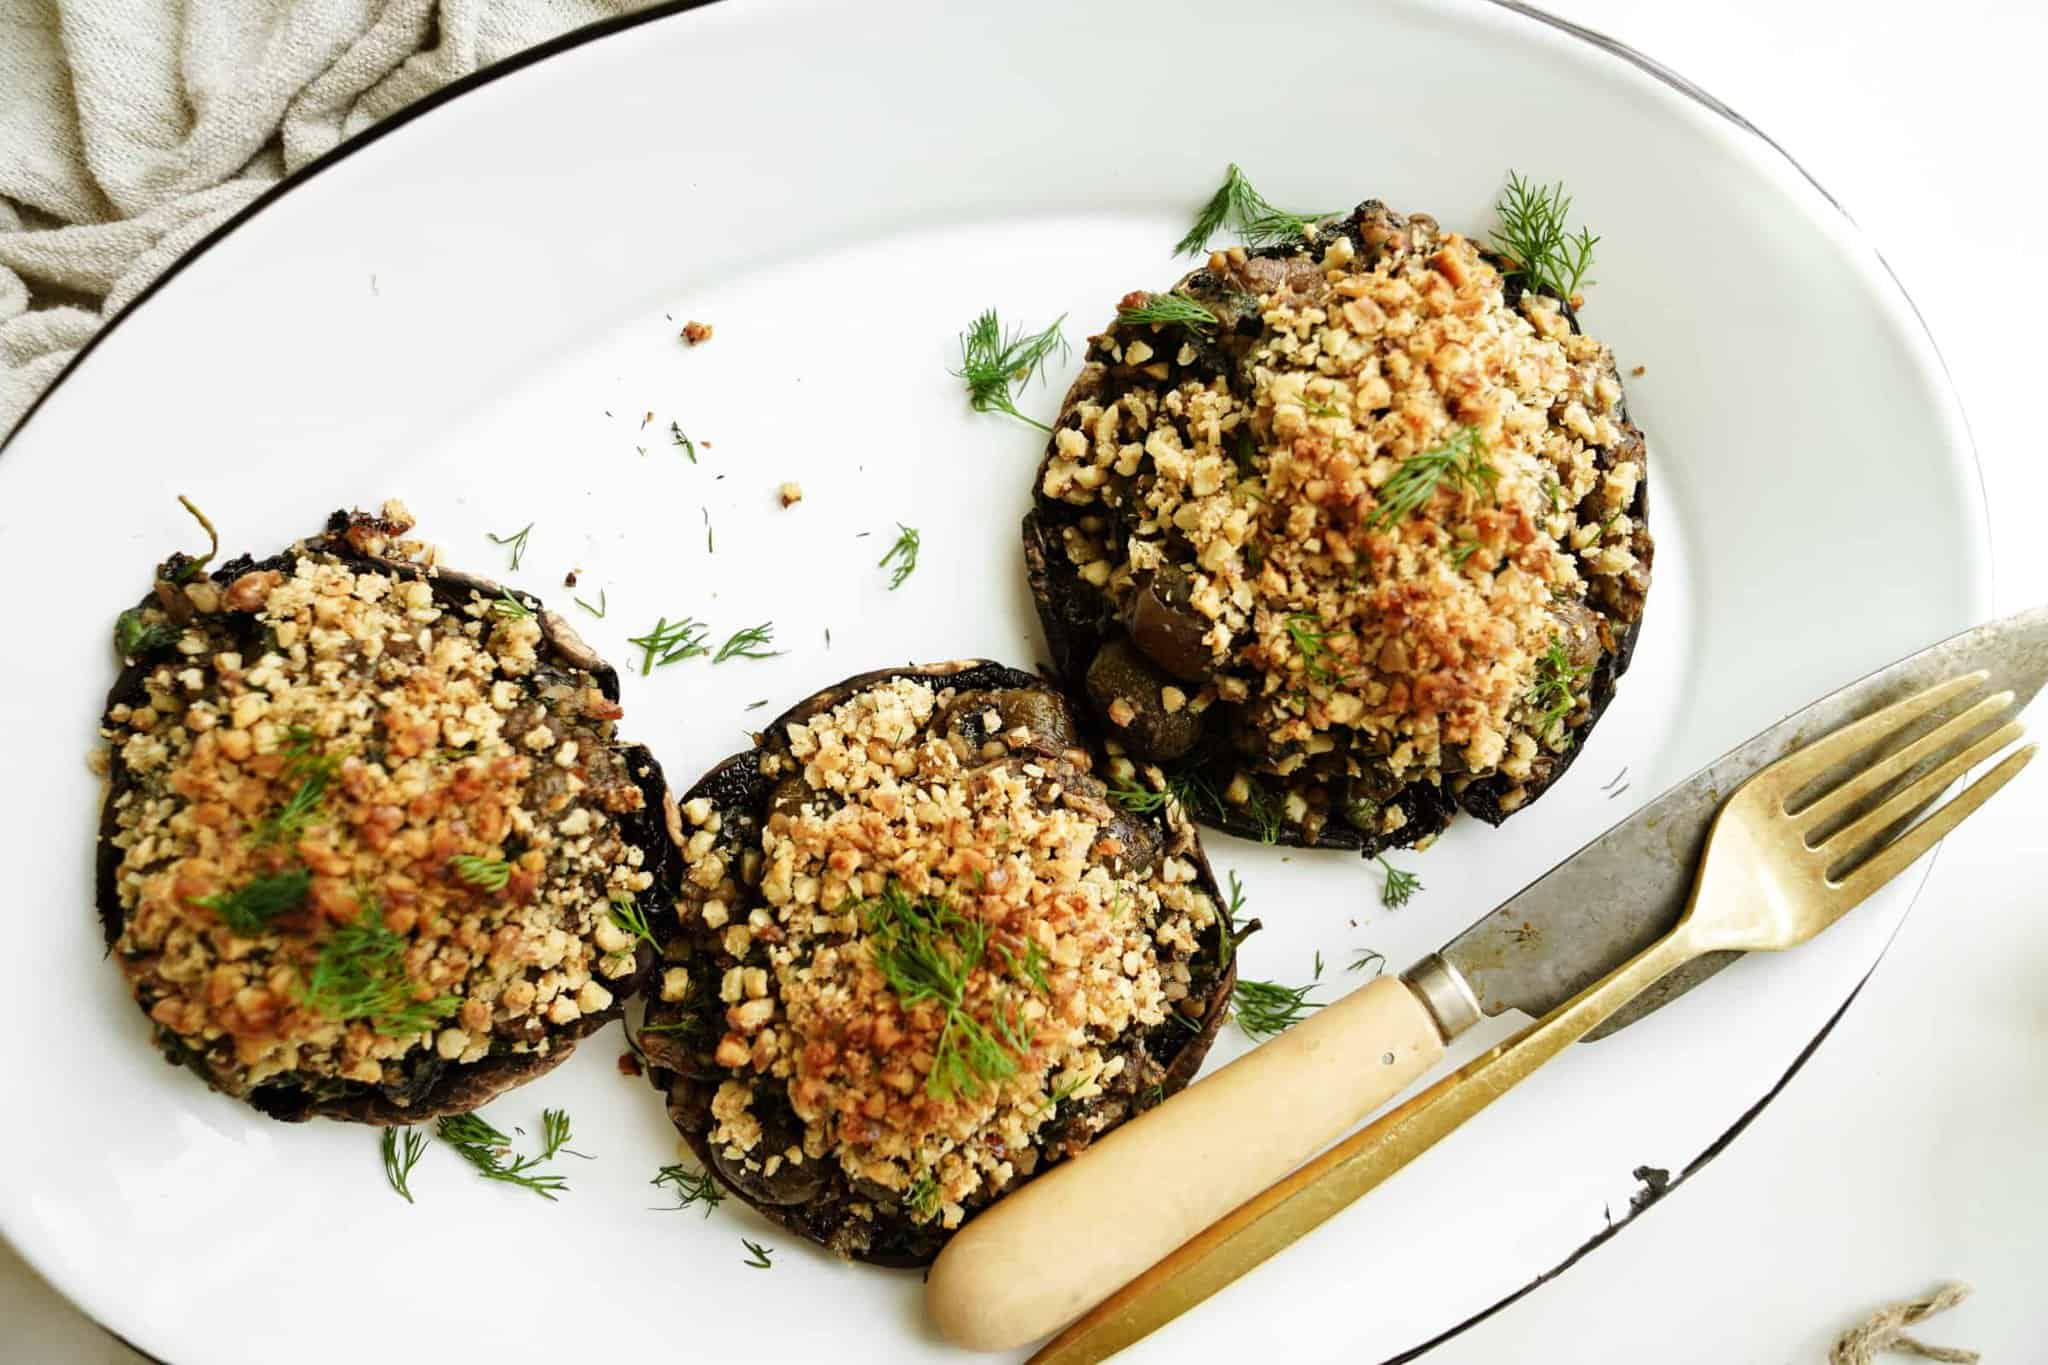 Vegan Stuffed Portobello Mushrooms on a serving plate with a fork and knife